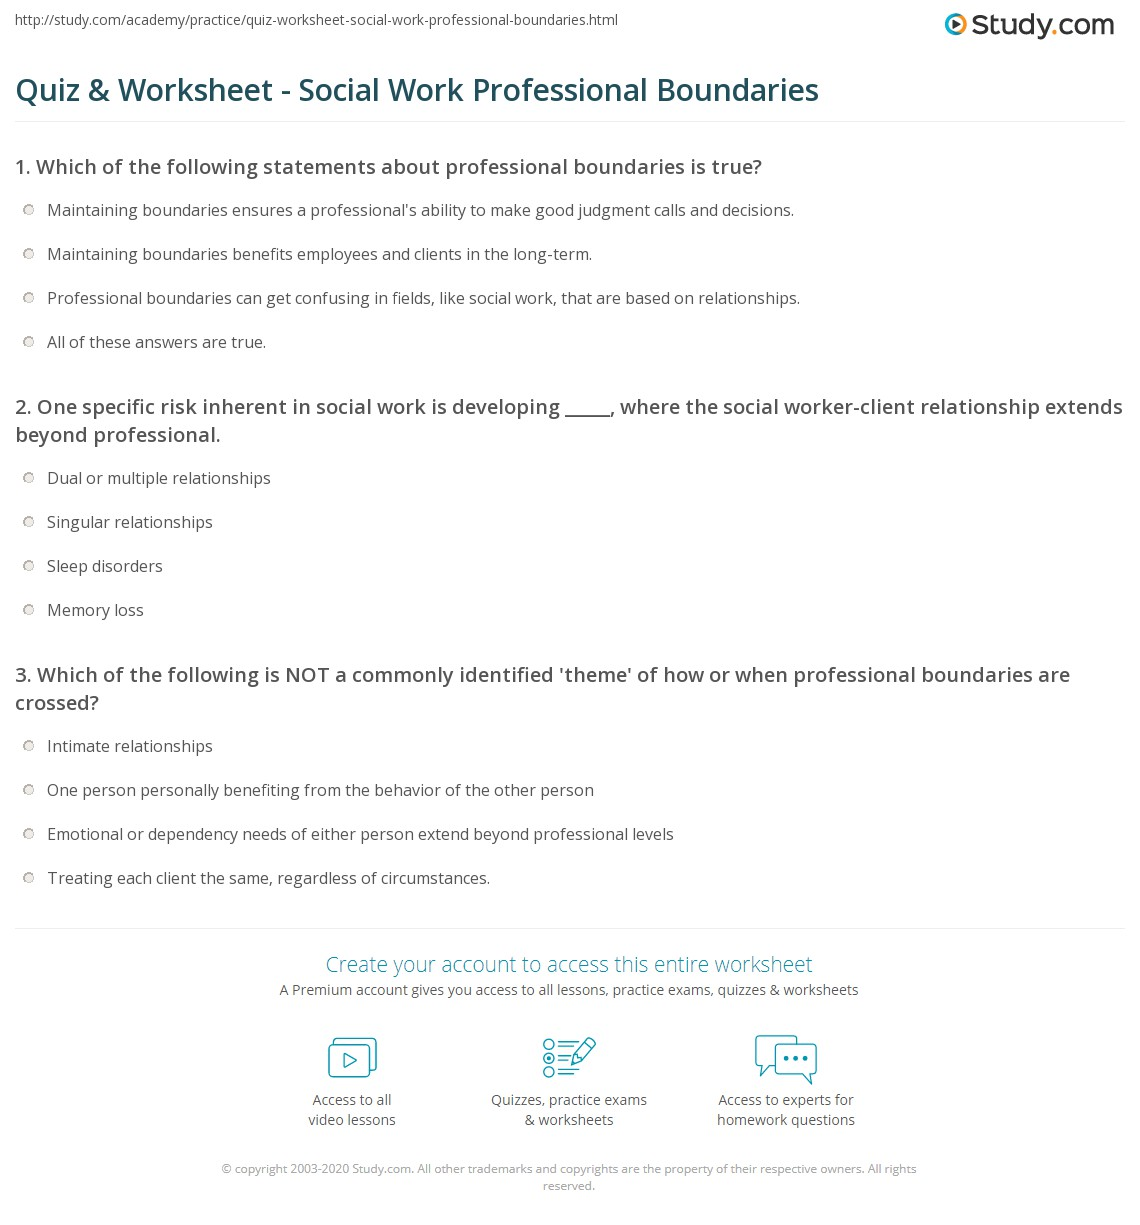 Social Work Boundaries Worksheets